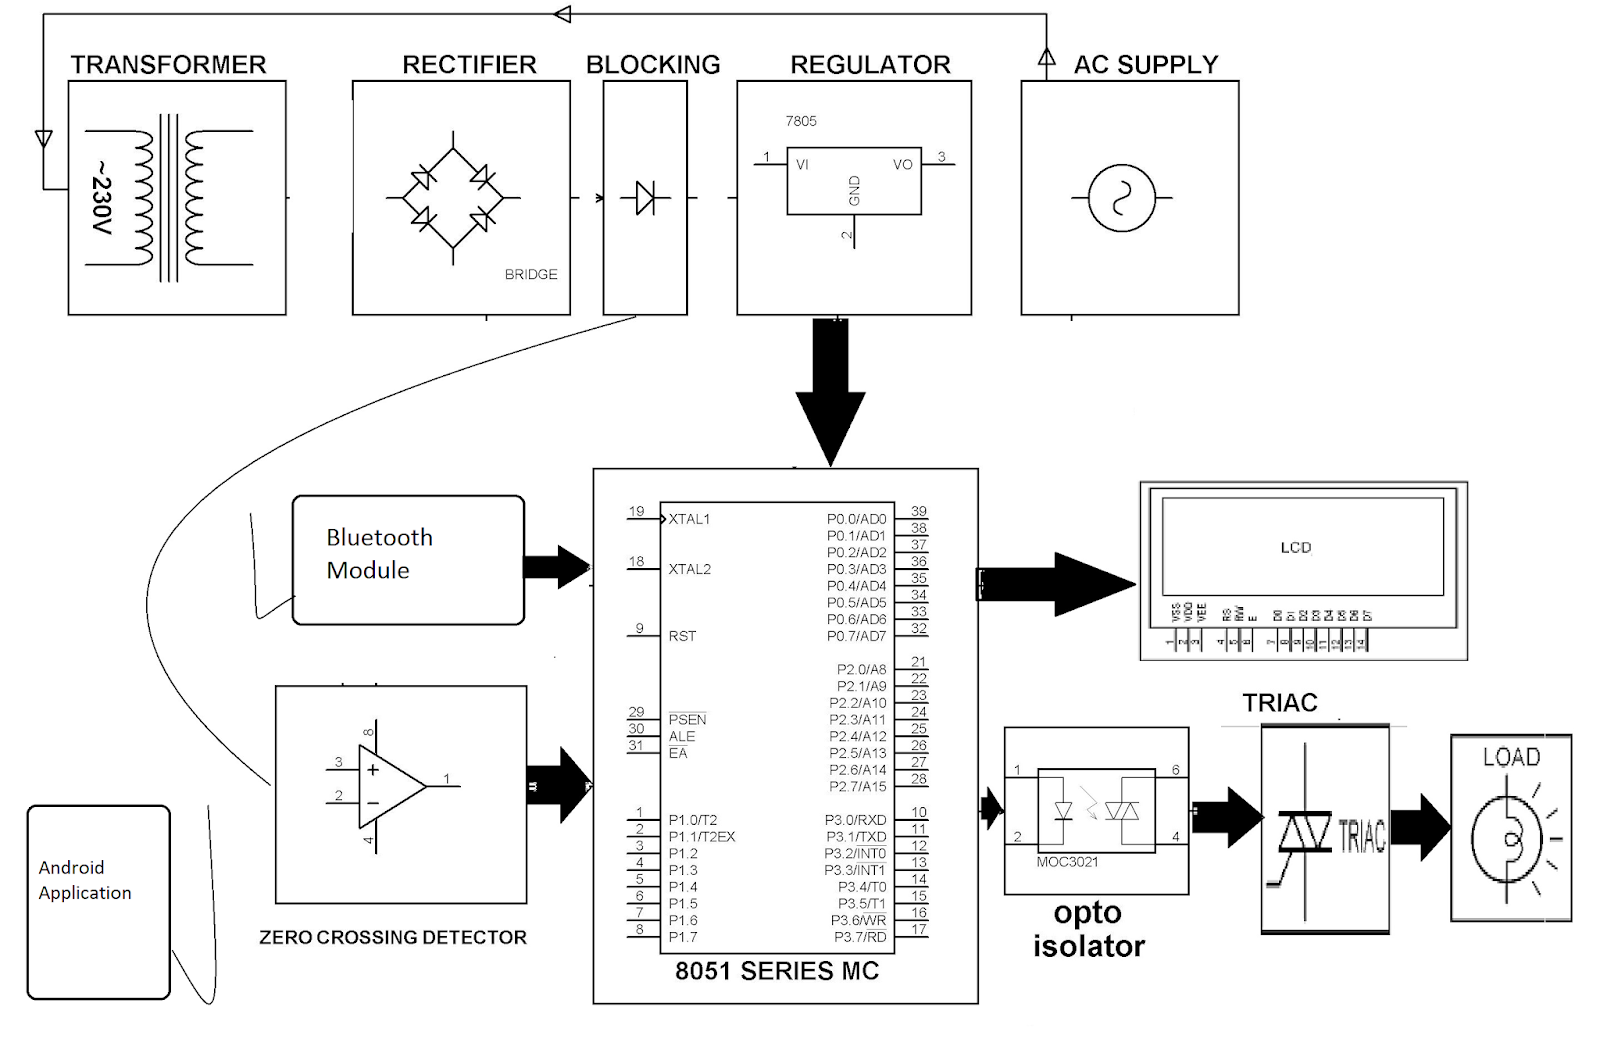 Android Controlled Remote Ac Power Control Smart Embedded Your Electronics Circuit Board 8051 Projects Supply Design Block Diagram